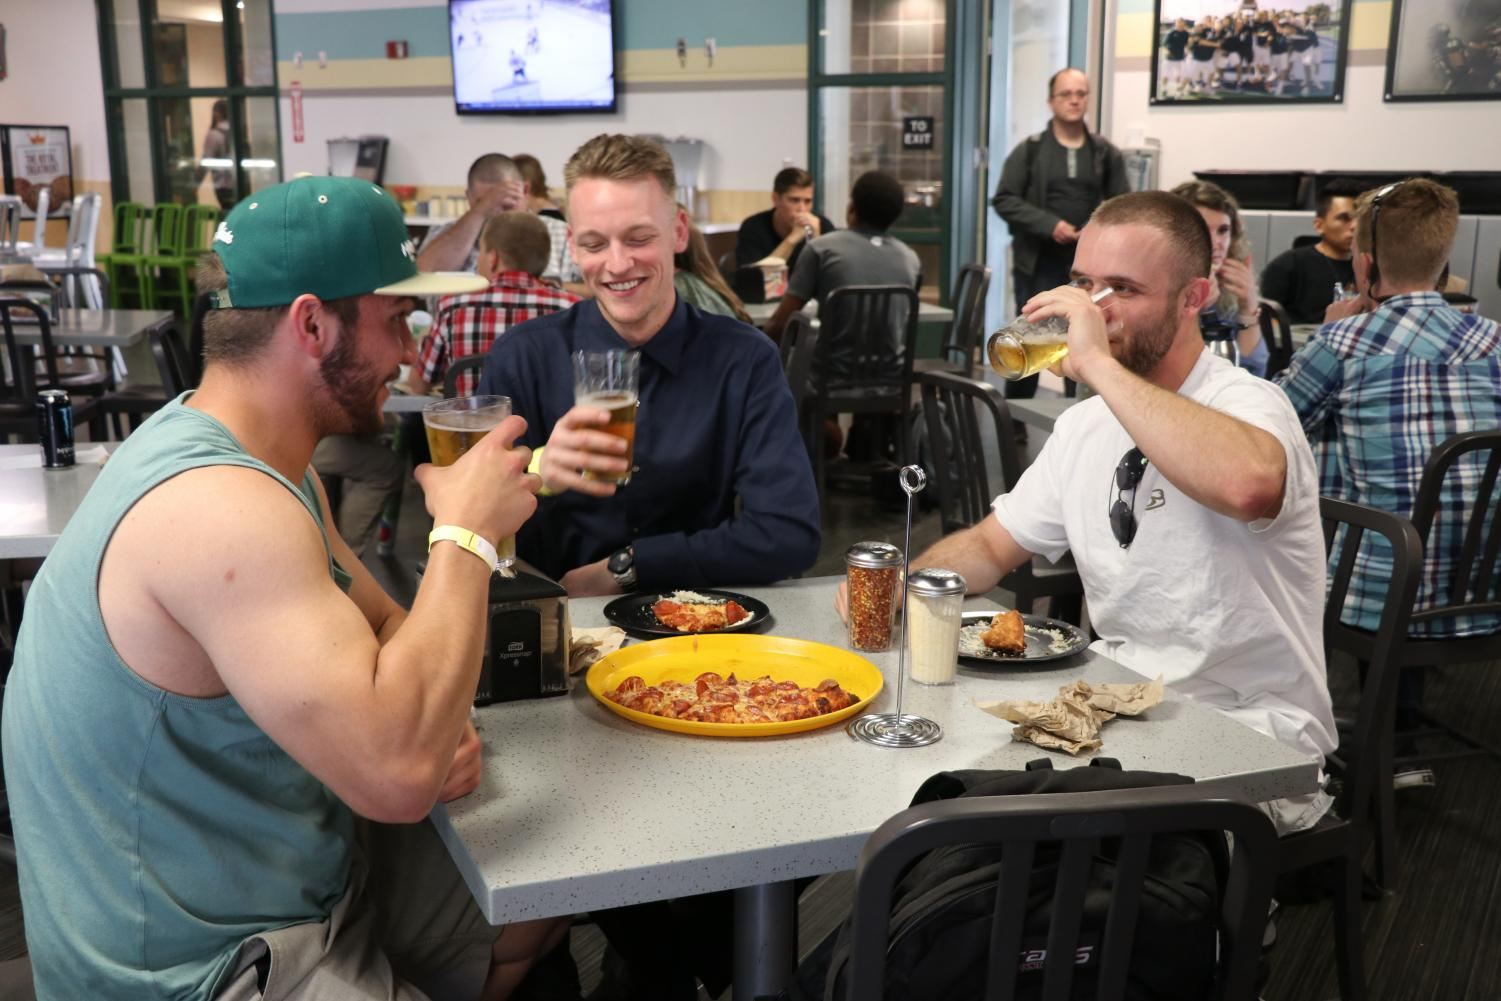 Aaron Jestice, Parker Wright and Kevin Khouri eat pizza and drink beers at Round Table Pizza on Sacramento State's campus, Thursday, May 3, 2018.